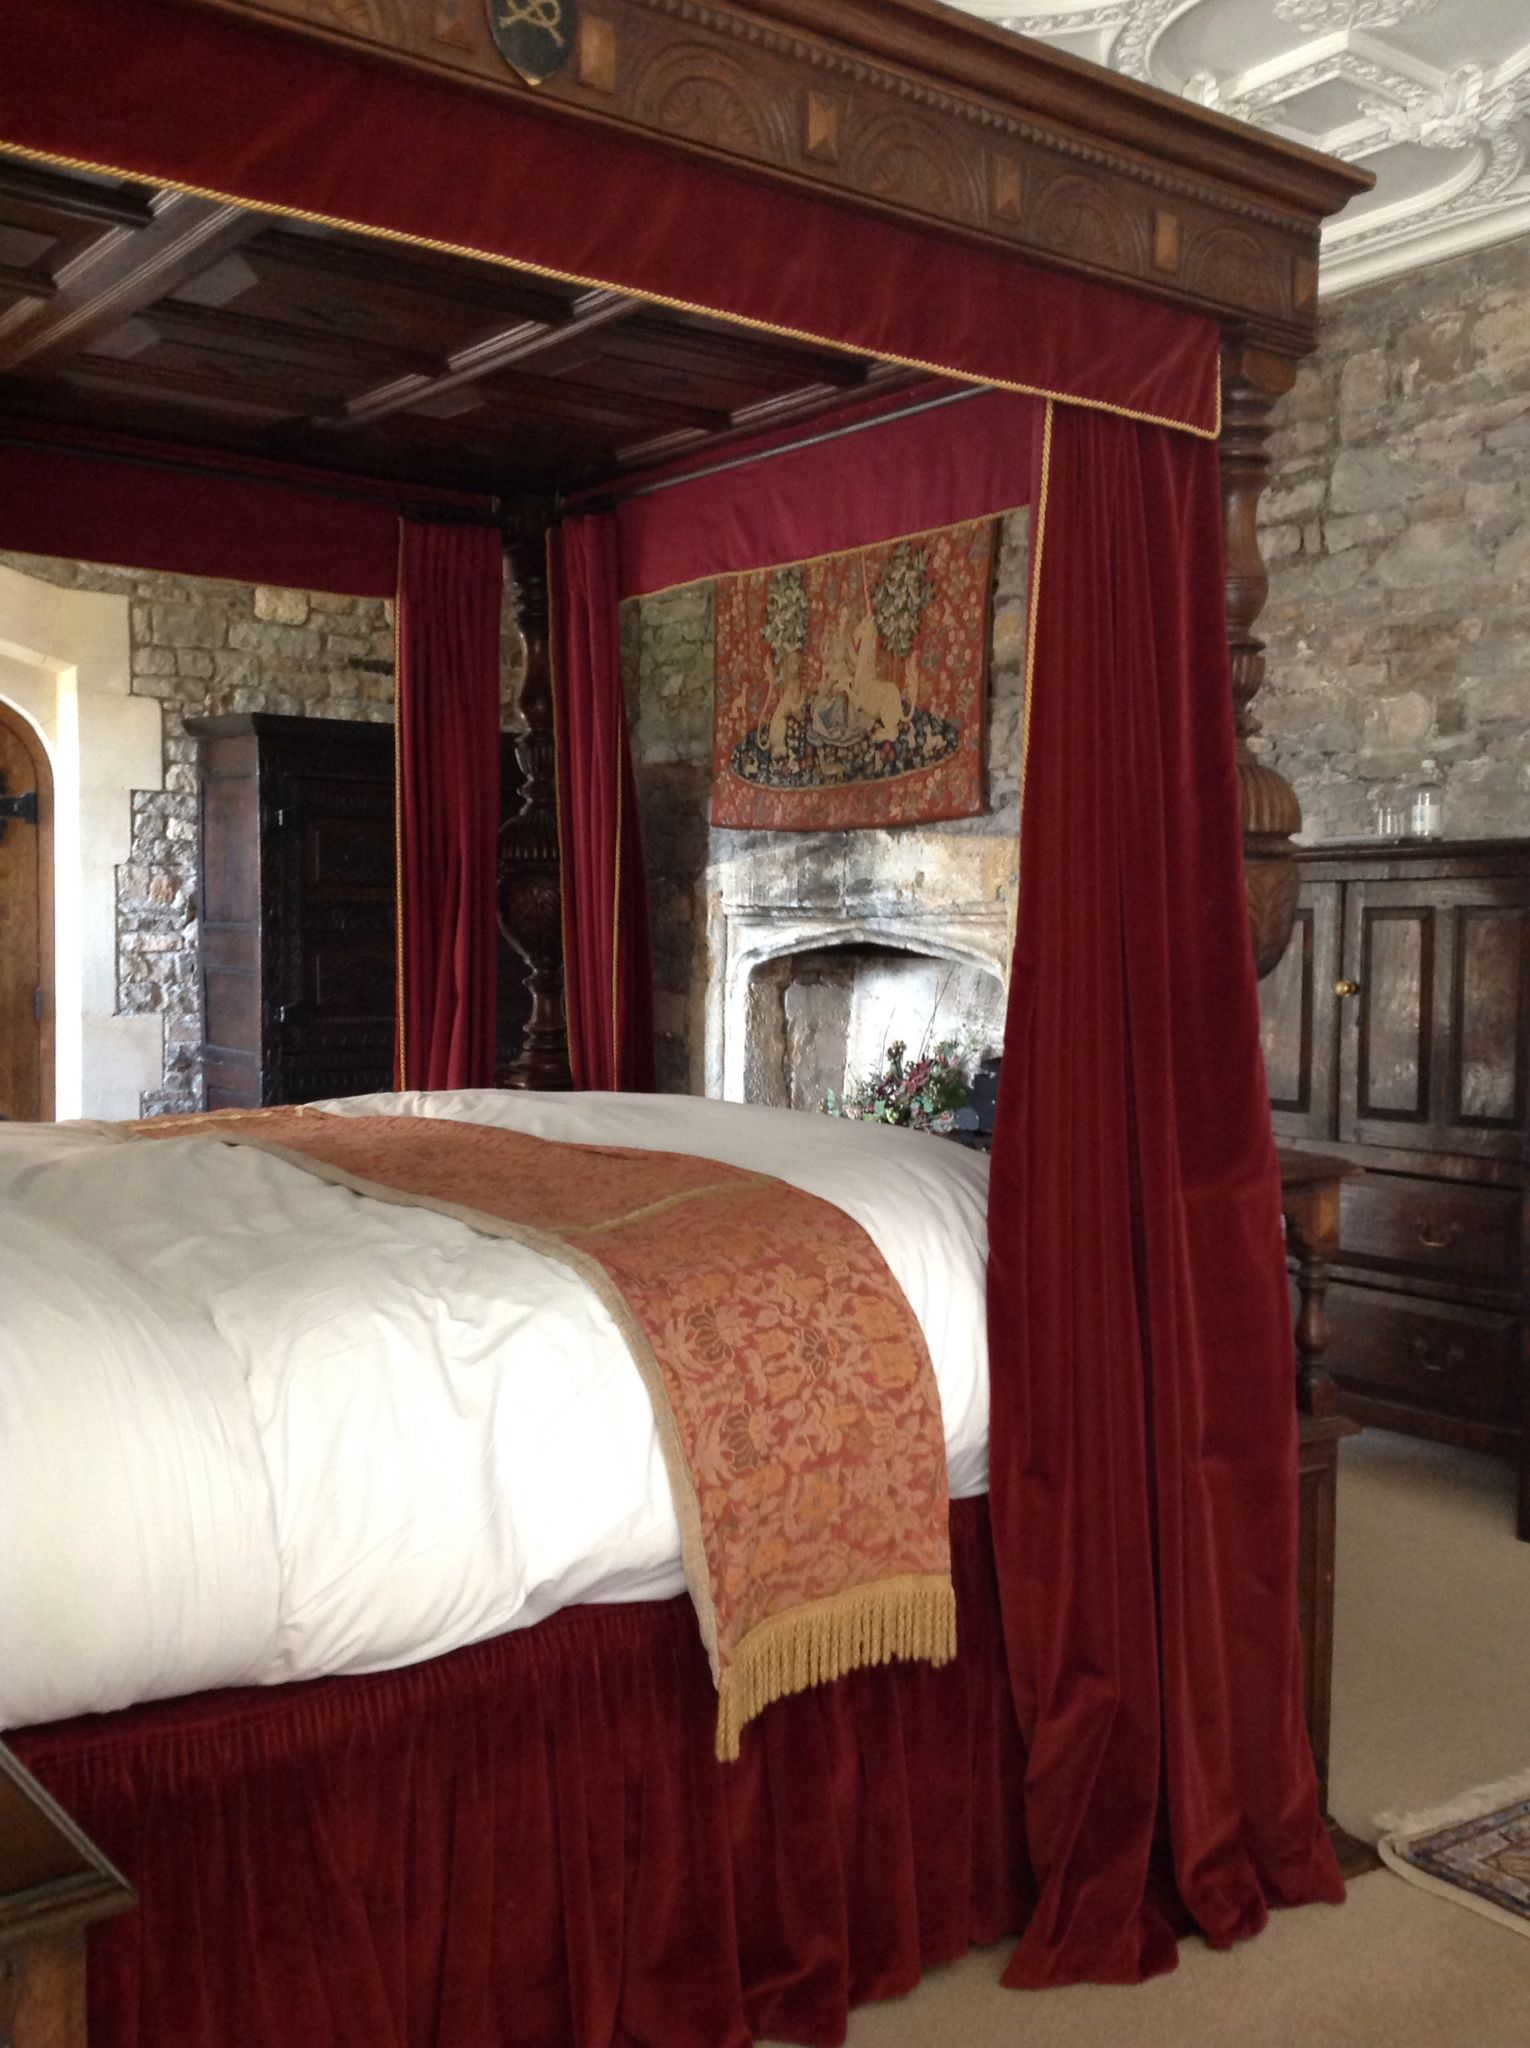 Thornbury Castle Howard Suite Castle Where Henry Viii And Anne